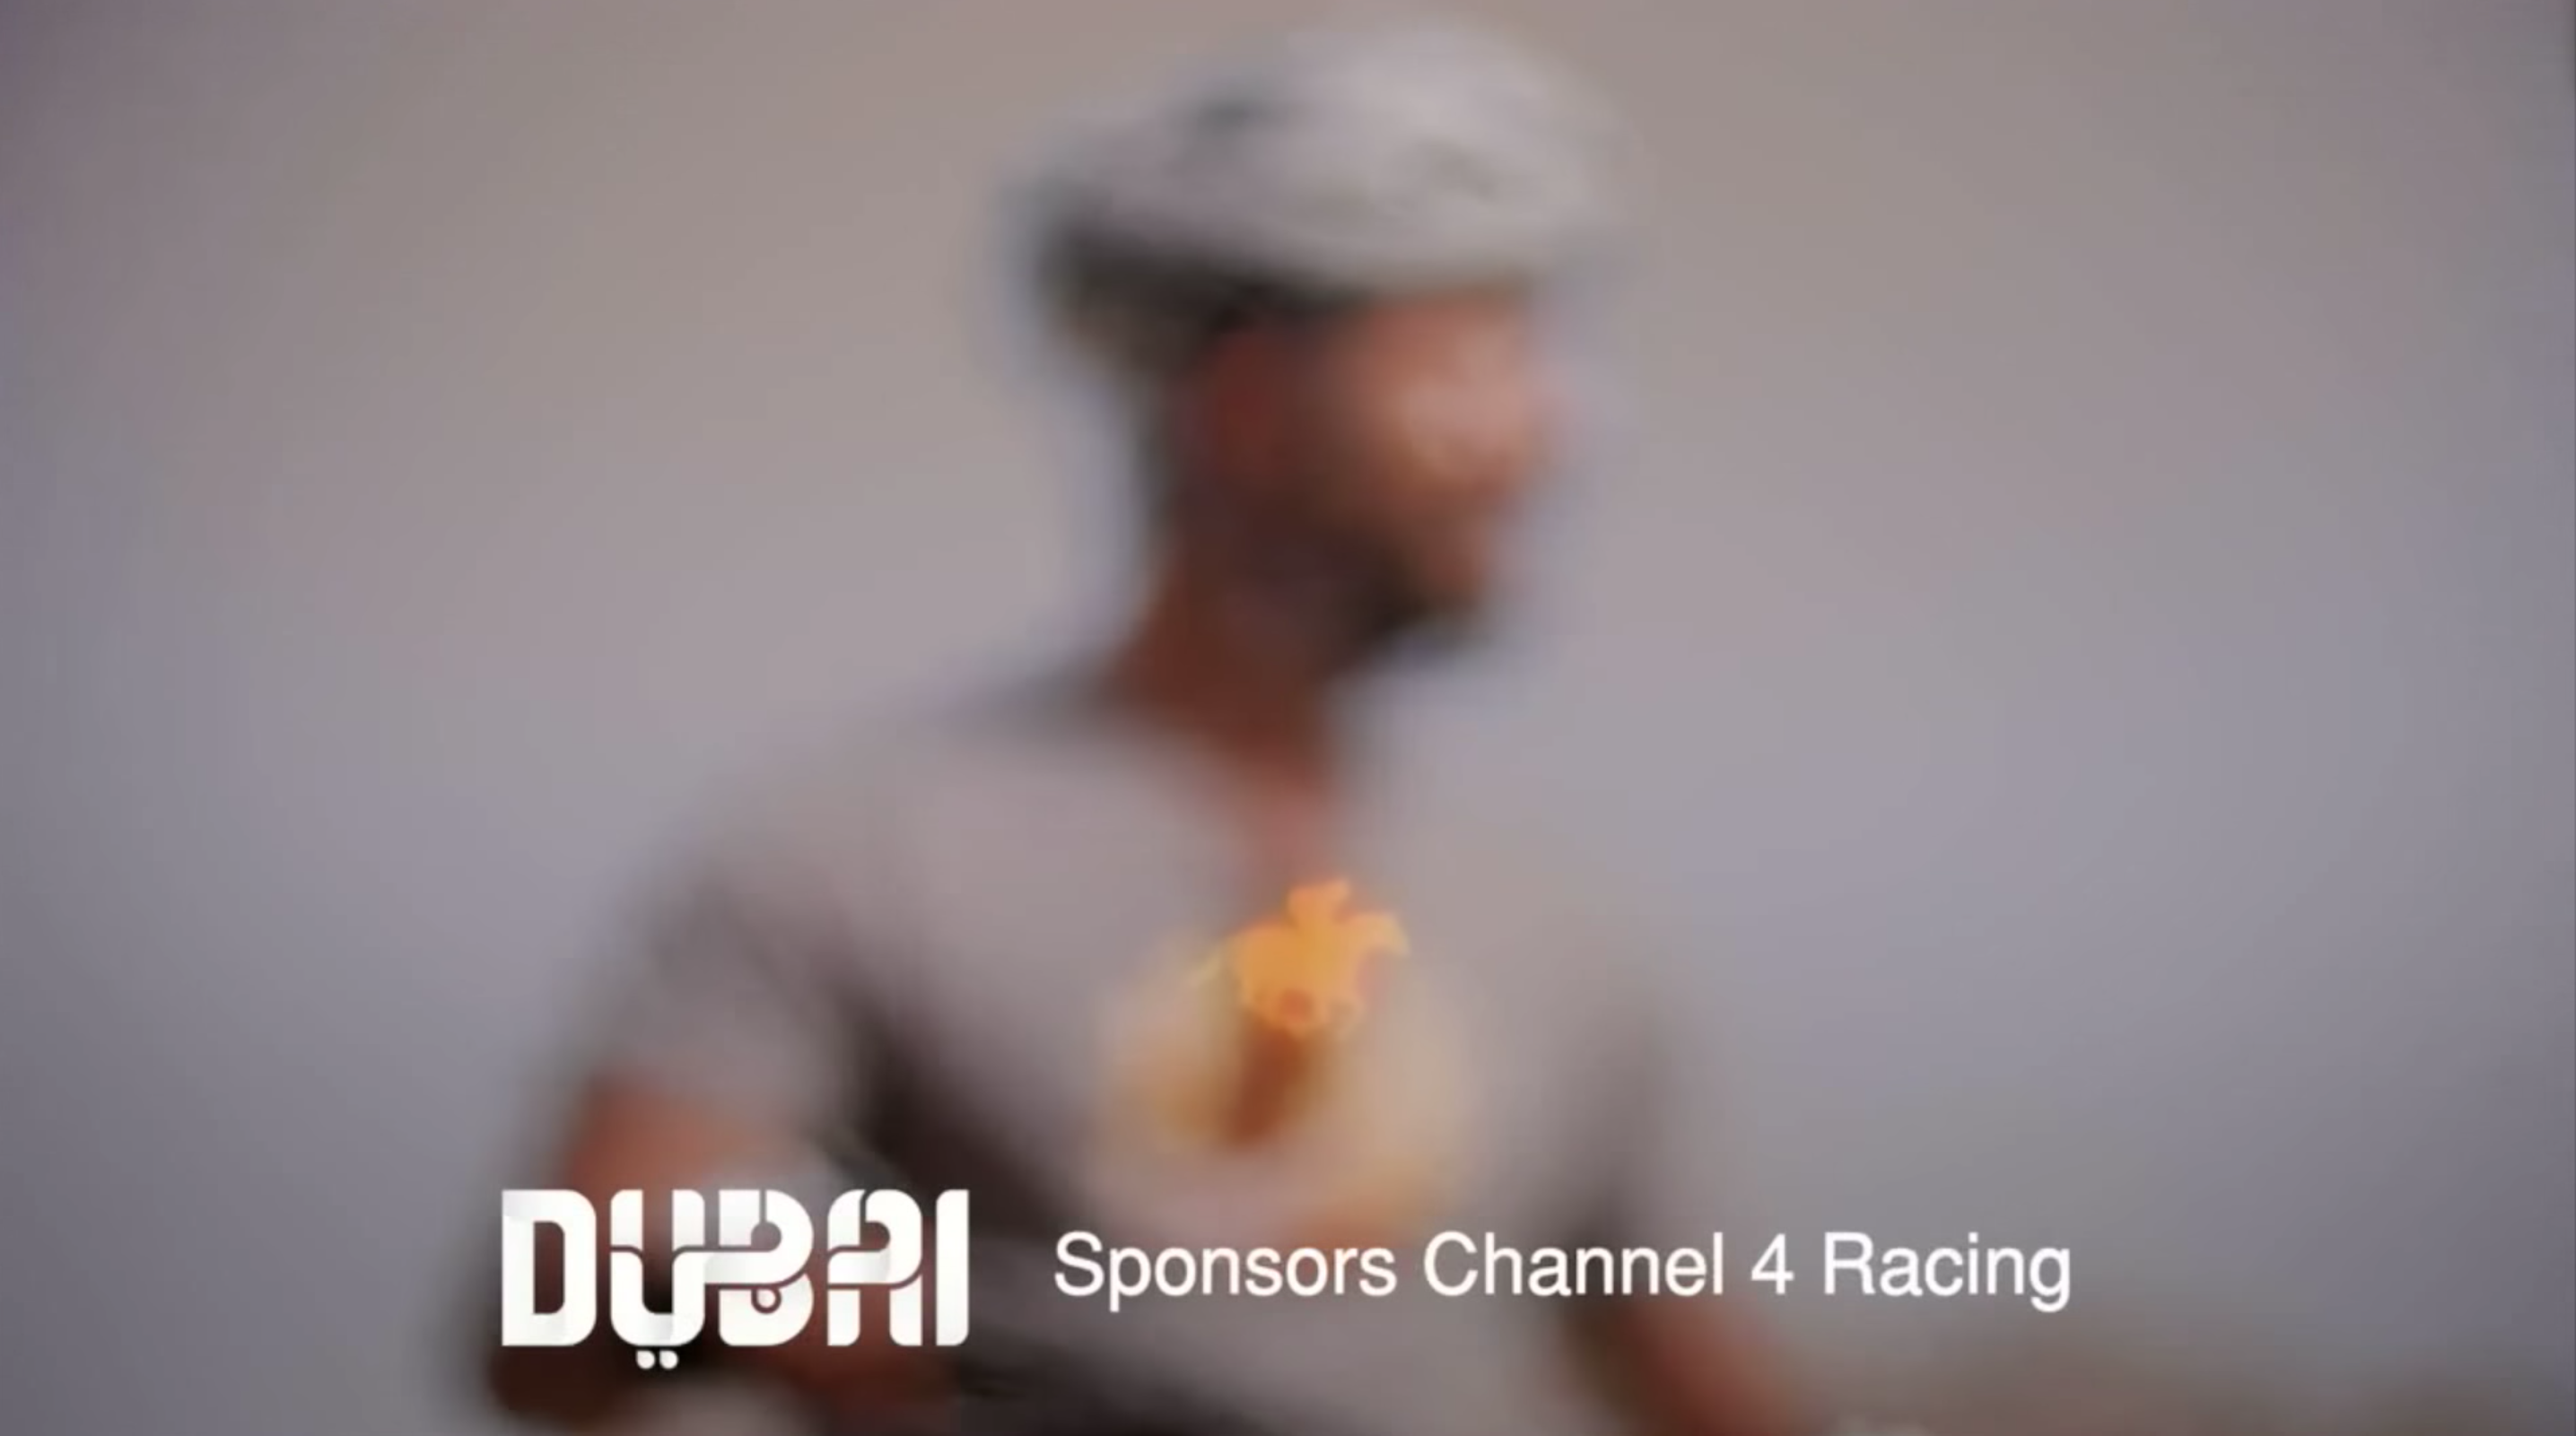 Dubai - Channel 4 Racing